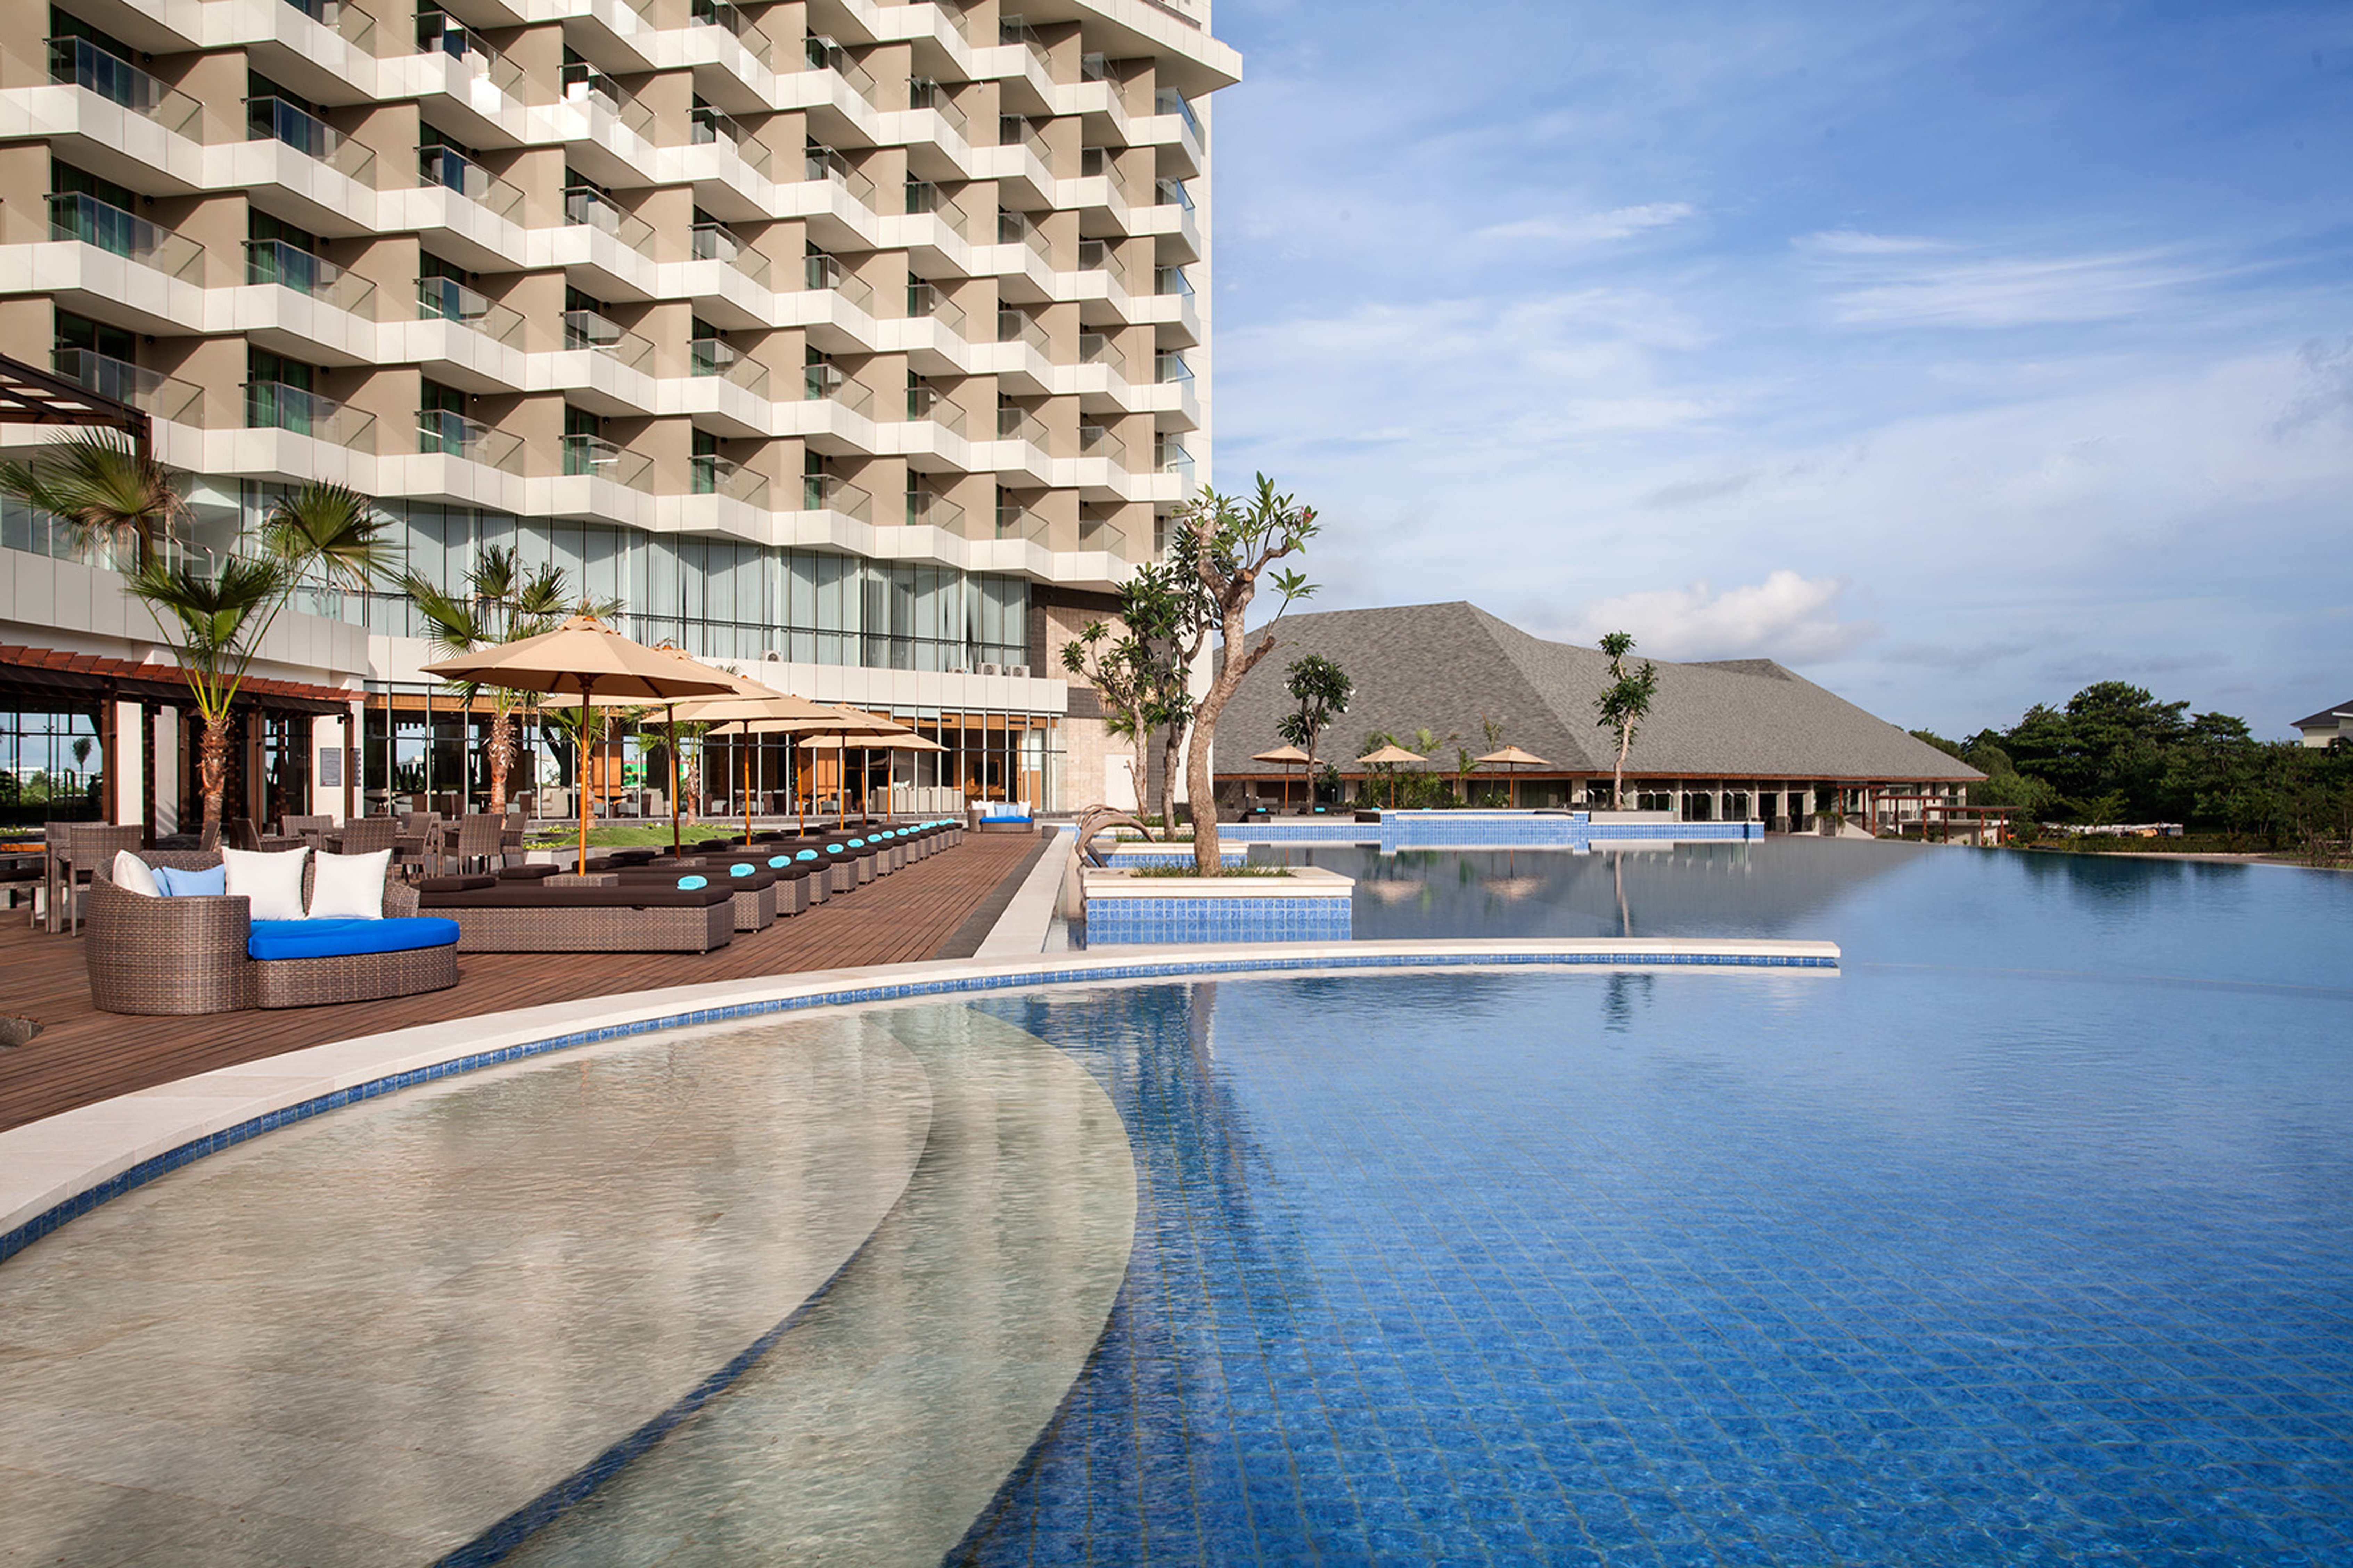 Hotel in Batam – do business in this Indonesian city